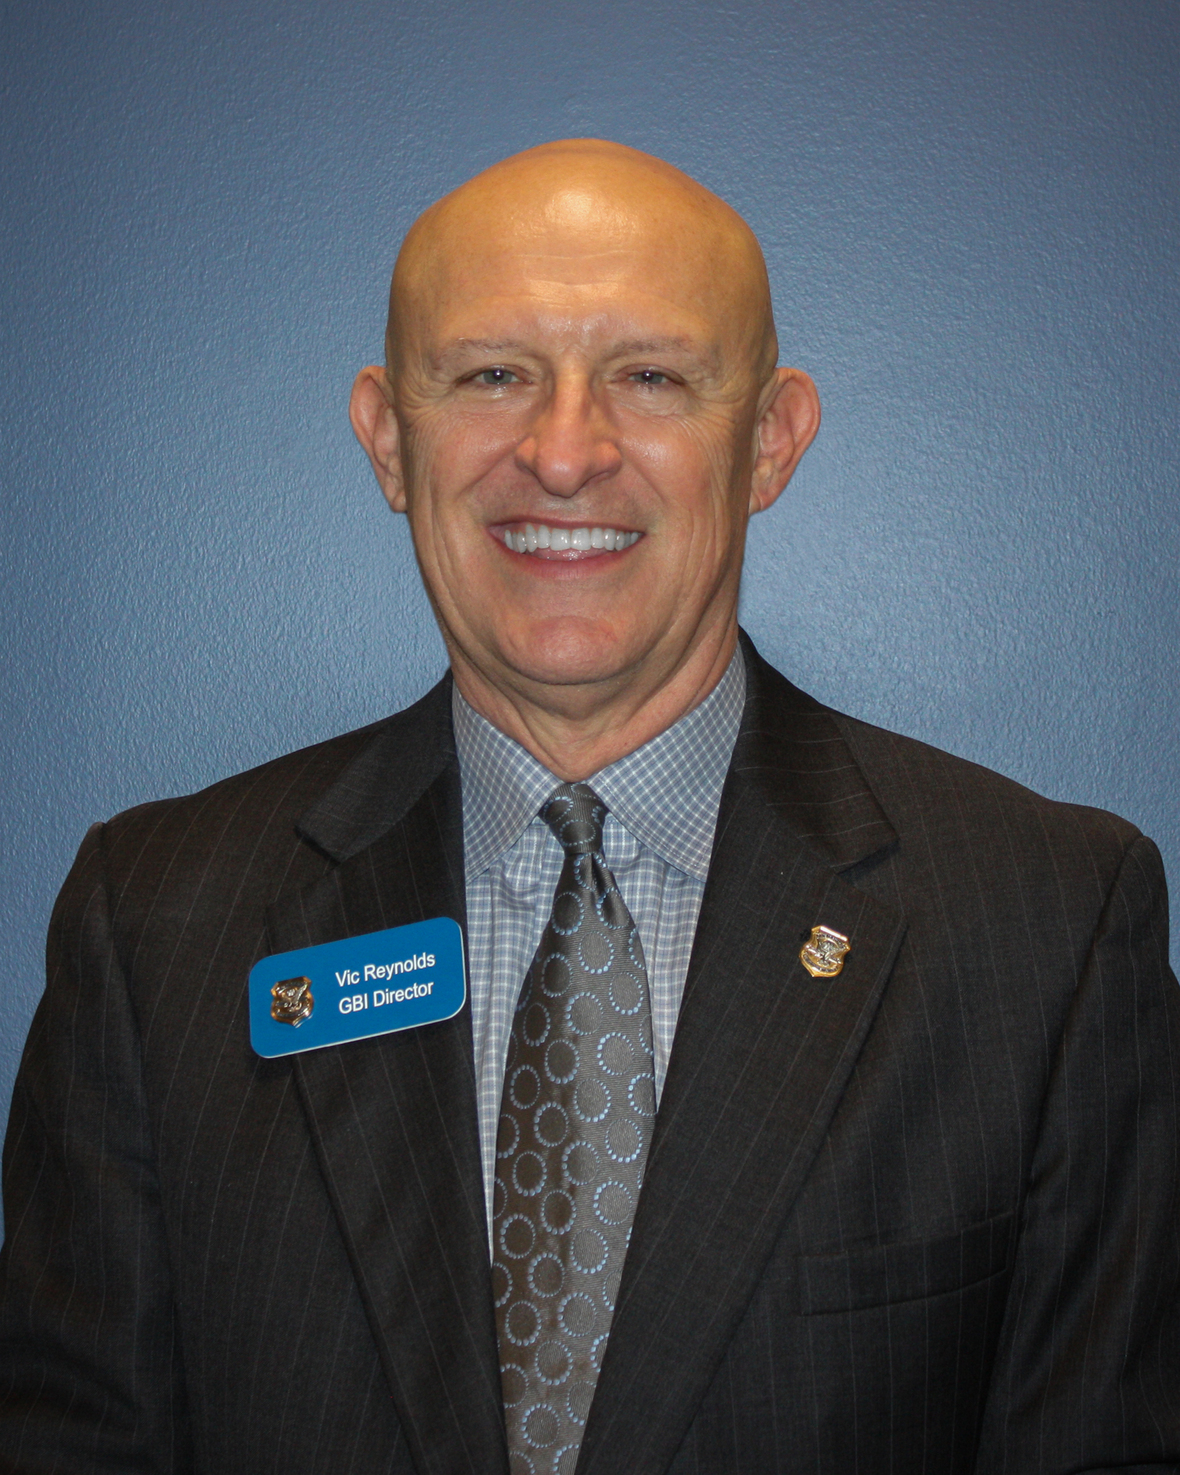 Photo of GBI Director Reynolds